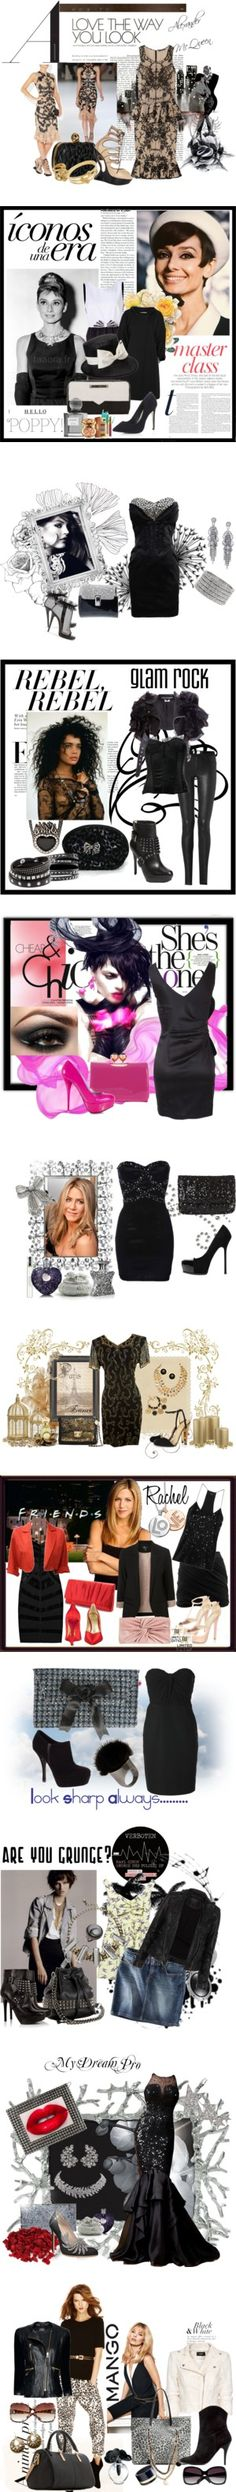 """Black"" by elena-indolfi on Polyvore"